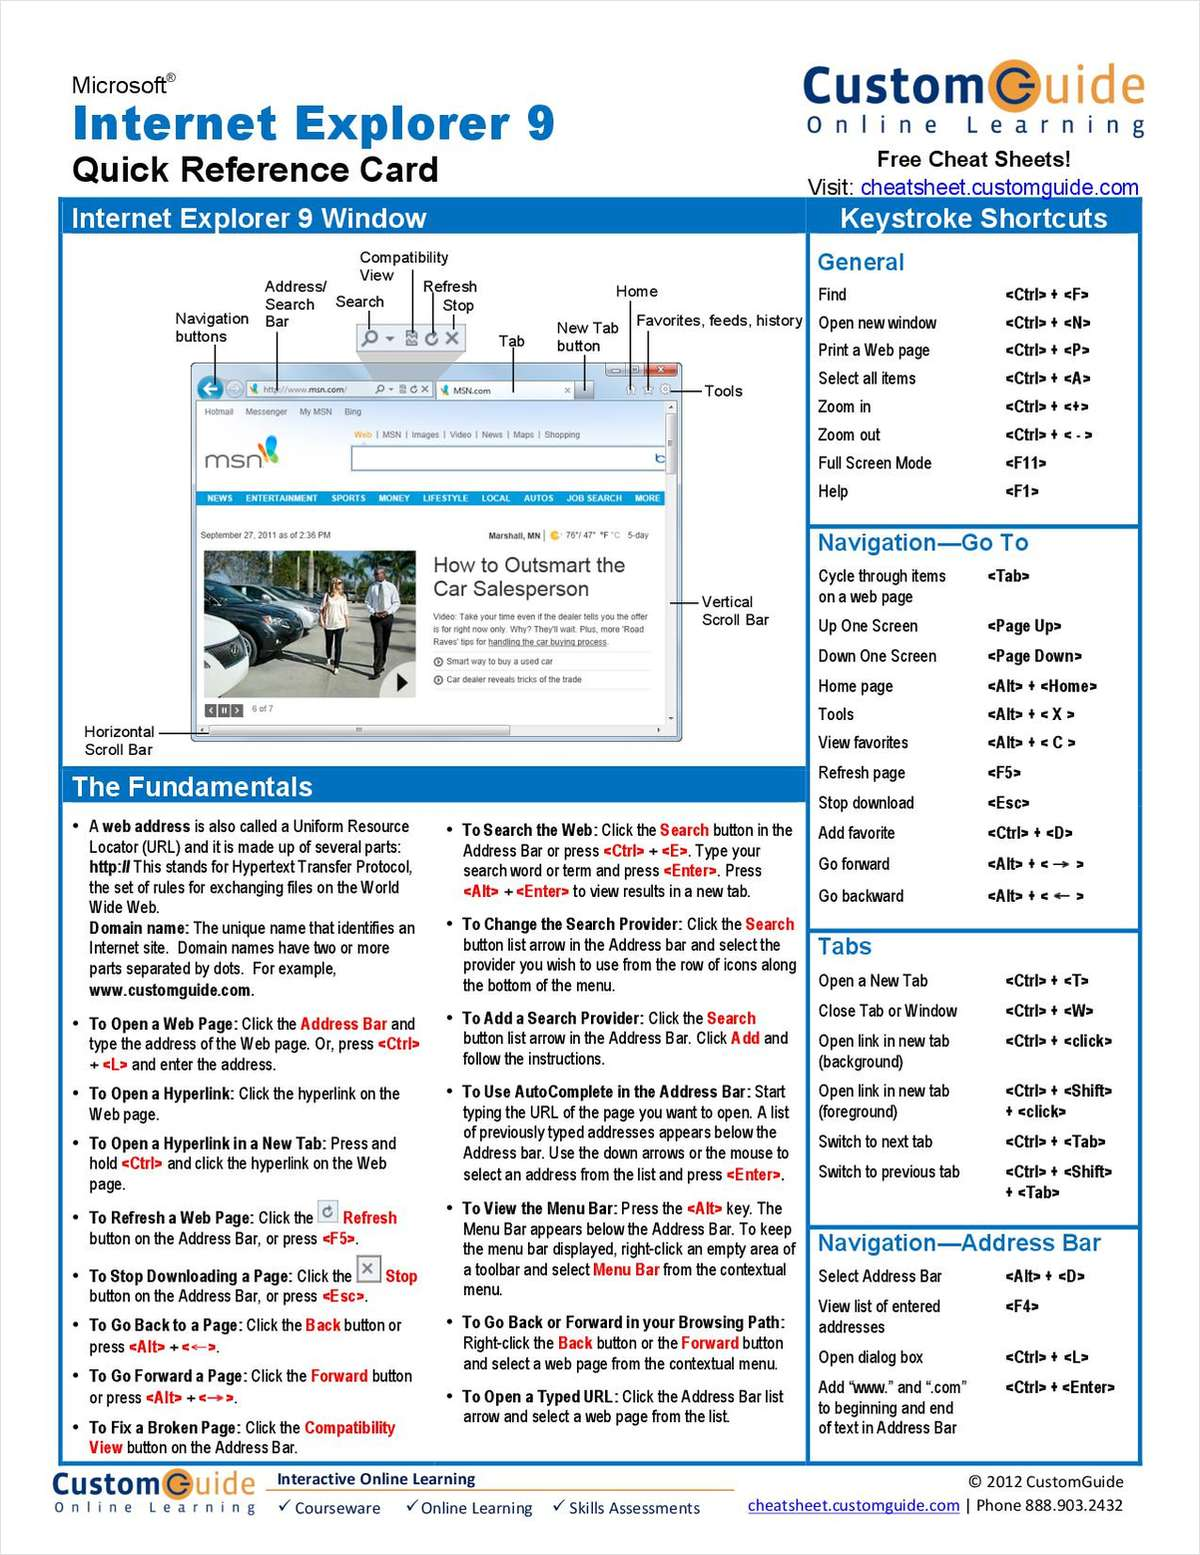 Internet Explorer 9 -- Free Quick Reference Card